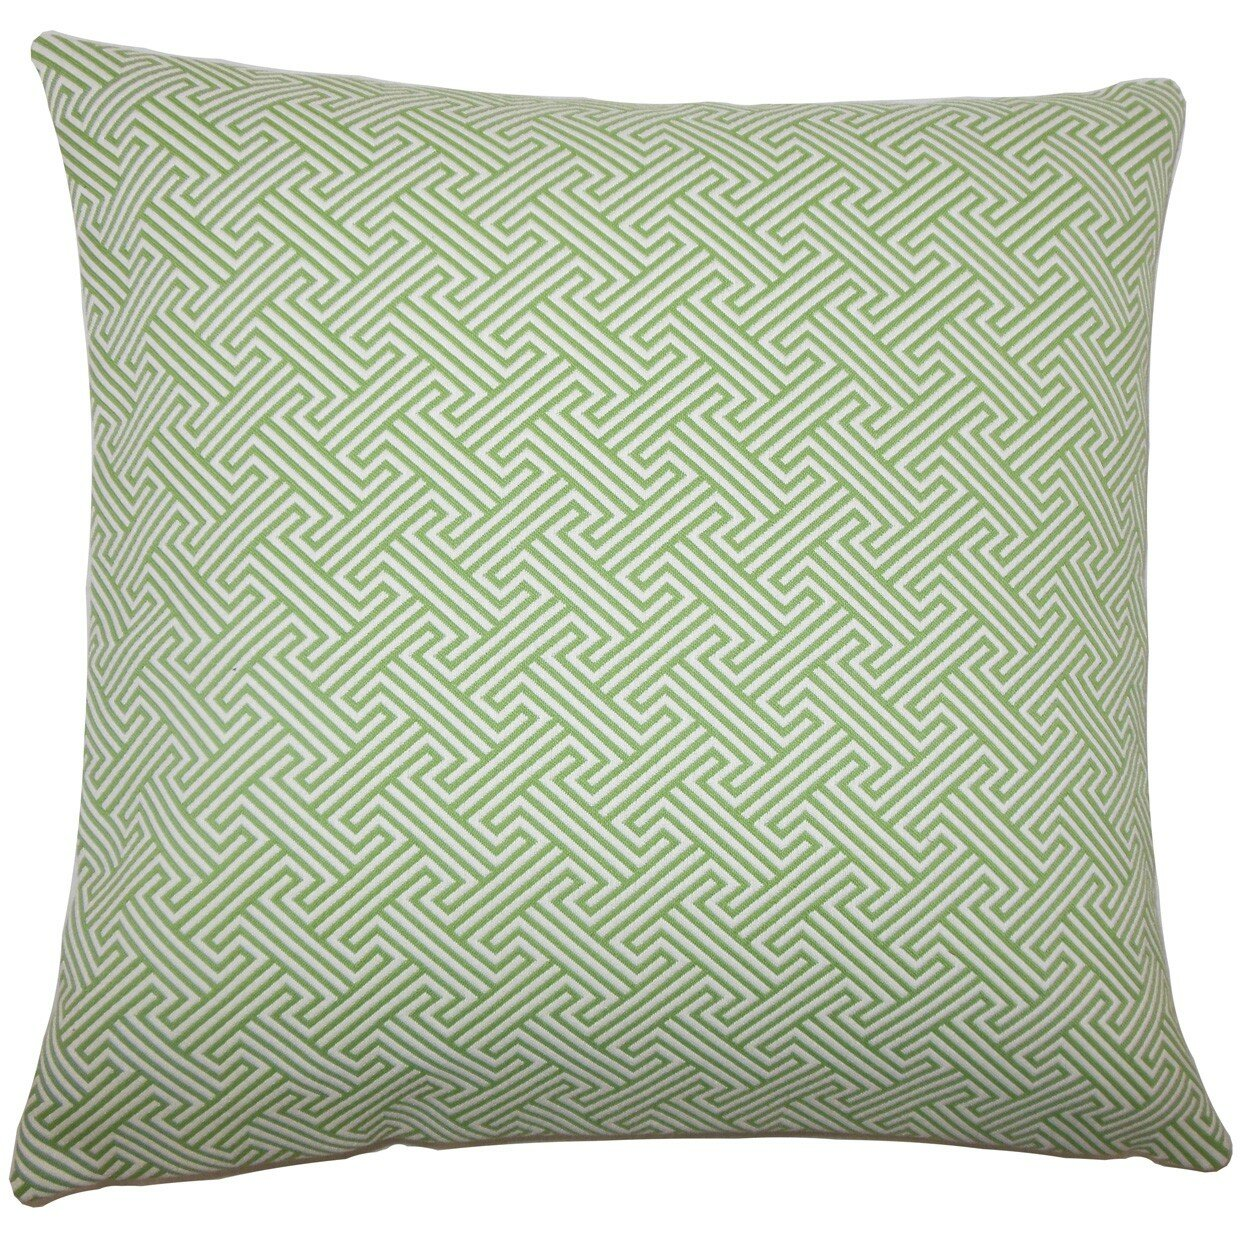 The Pillow Collection Reijo The Pillow Collection Cotton And Polyester Throw Pillow Wayfair